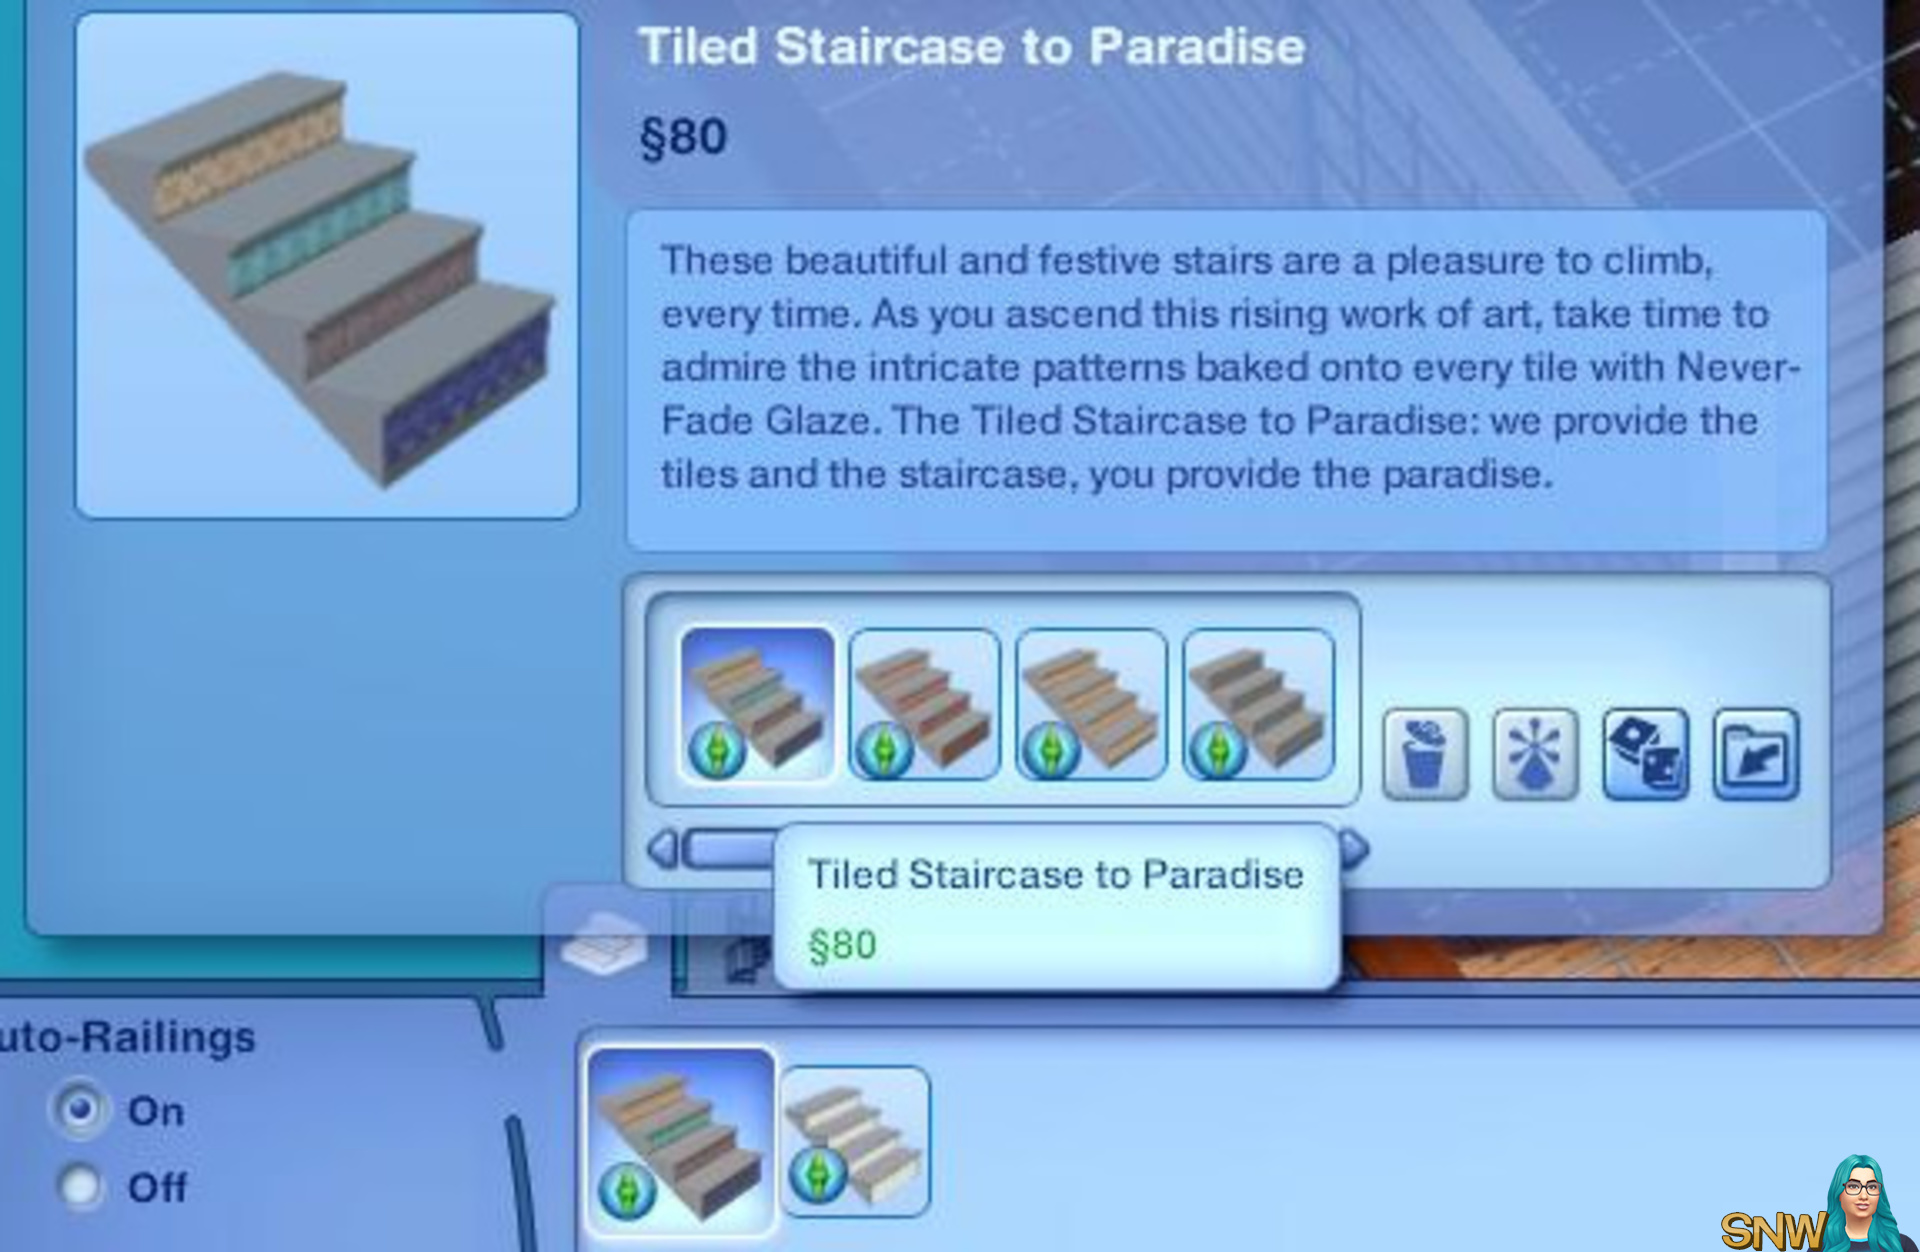 Paradise Islands - a bright addition to Sims 3. The Sims 3: Paradise Islands - the sea, the sun and mermaids